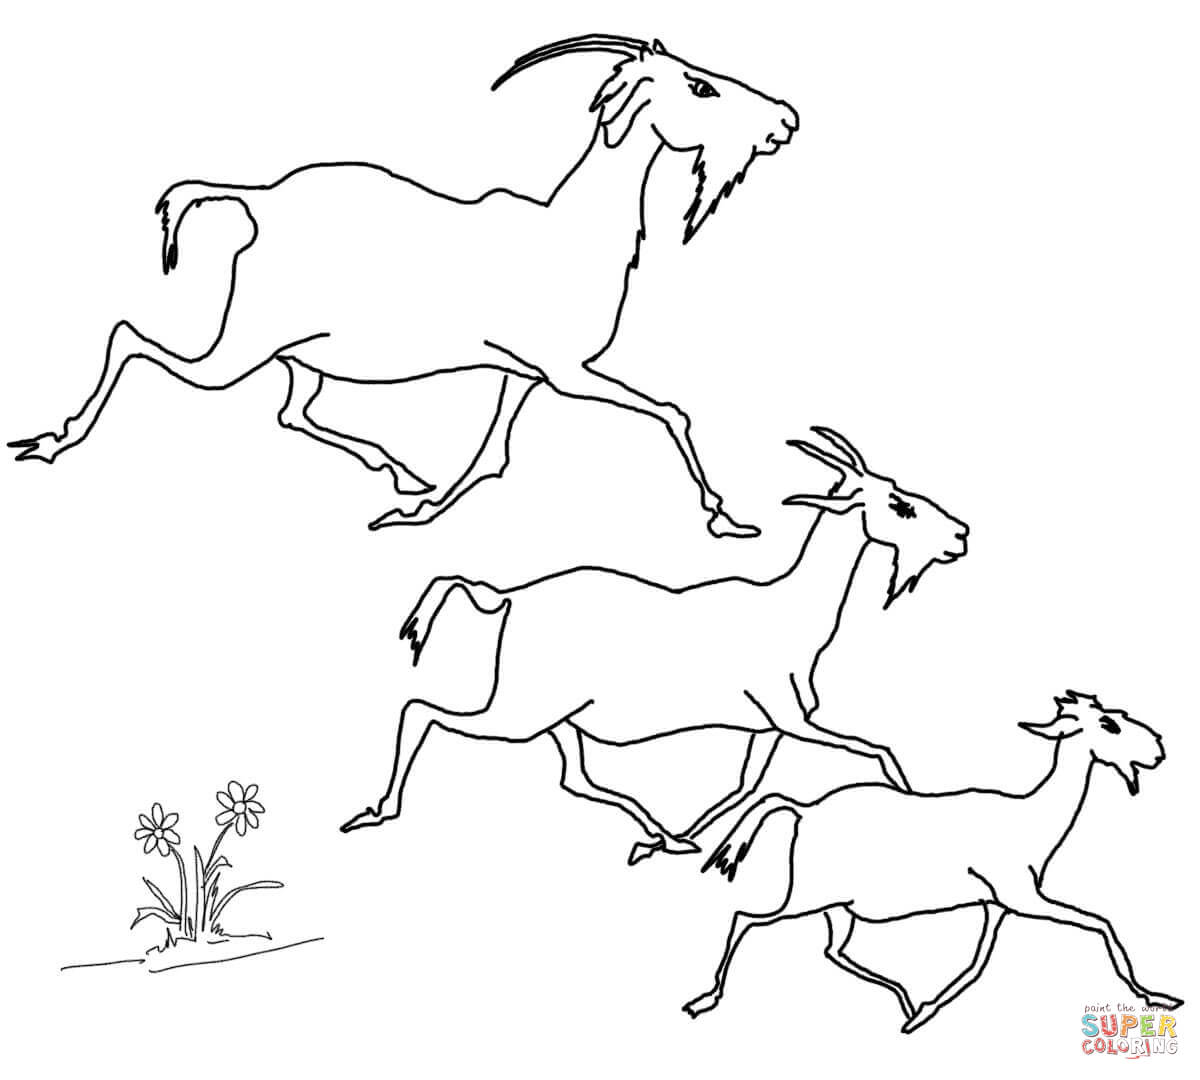 three billy goats gruff coloring pages three billy goats gruff coloring pages at getcoloringscom three pages coloring billy goats gruff